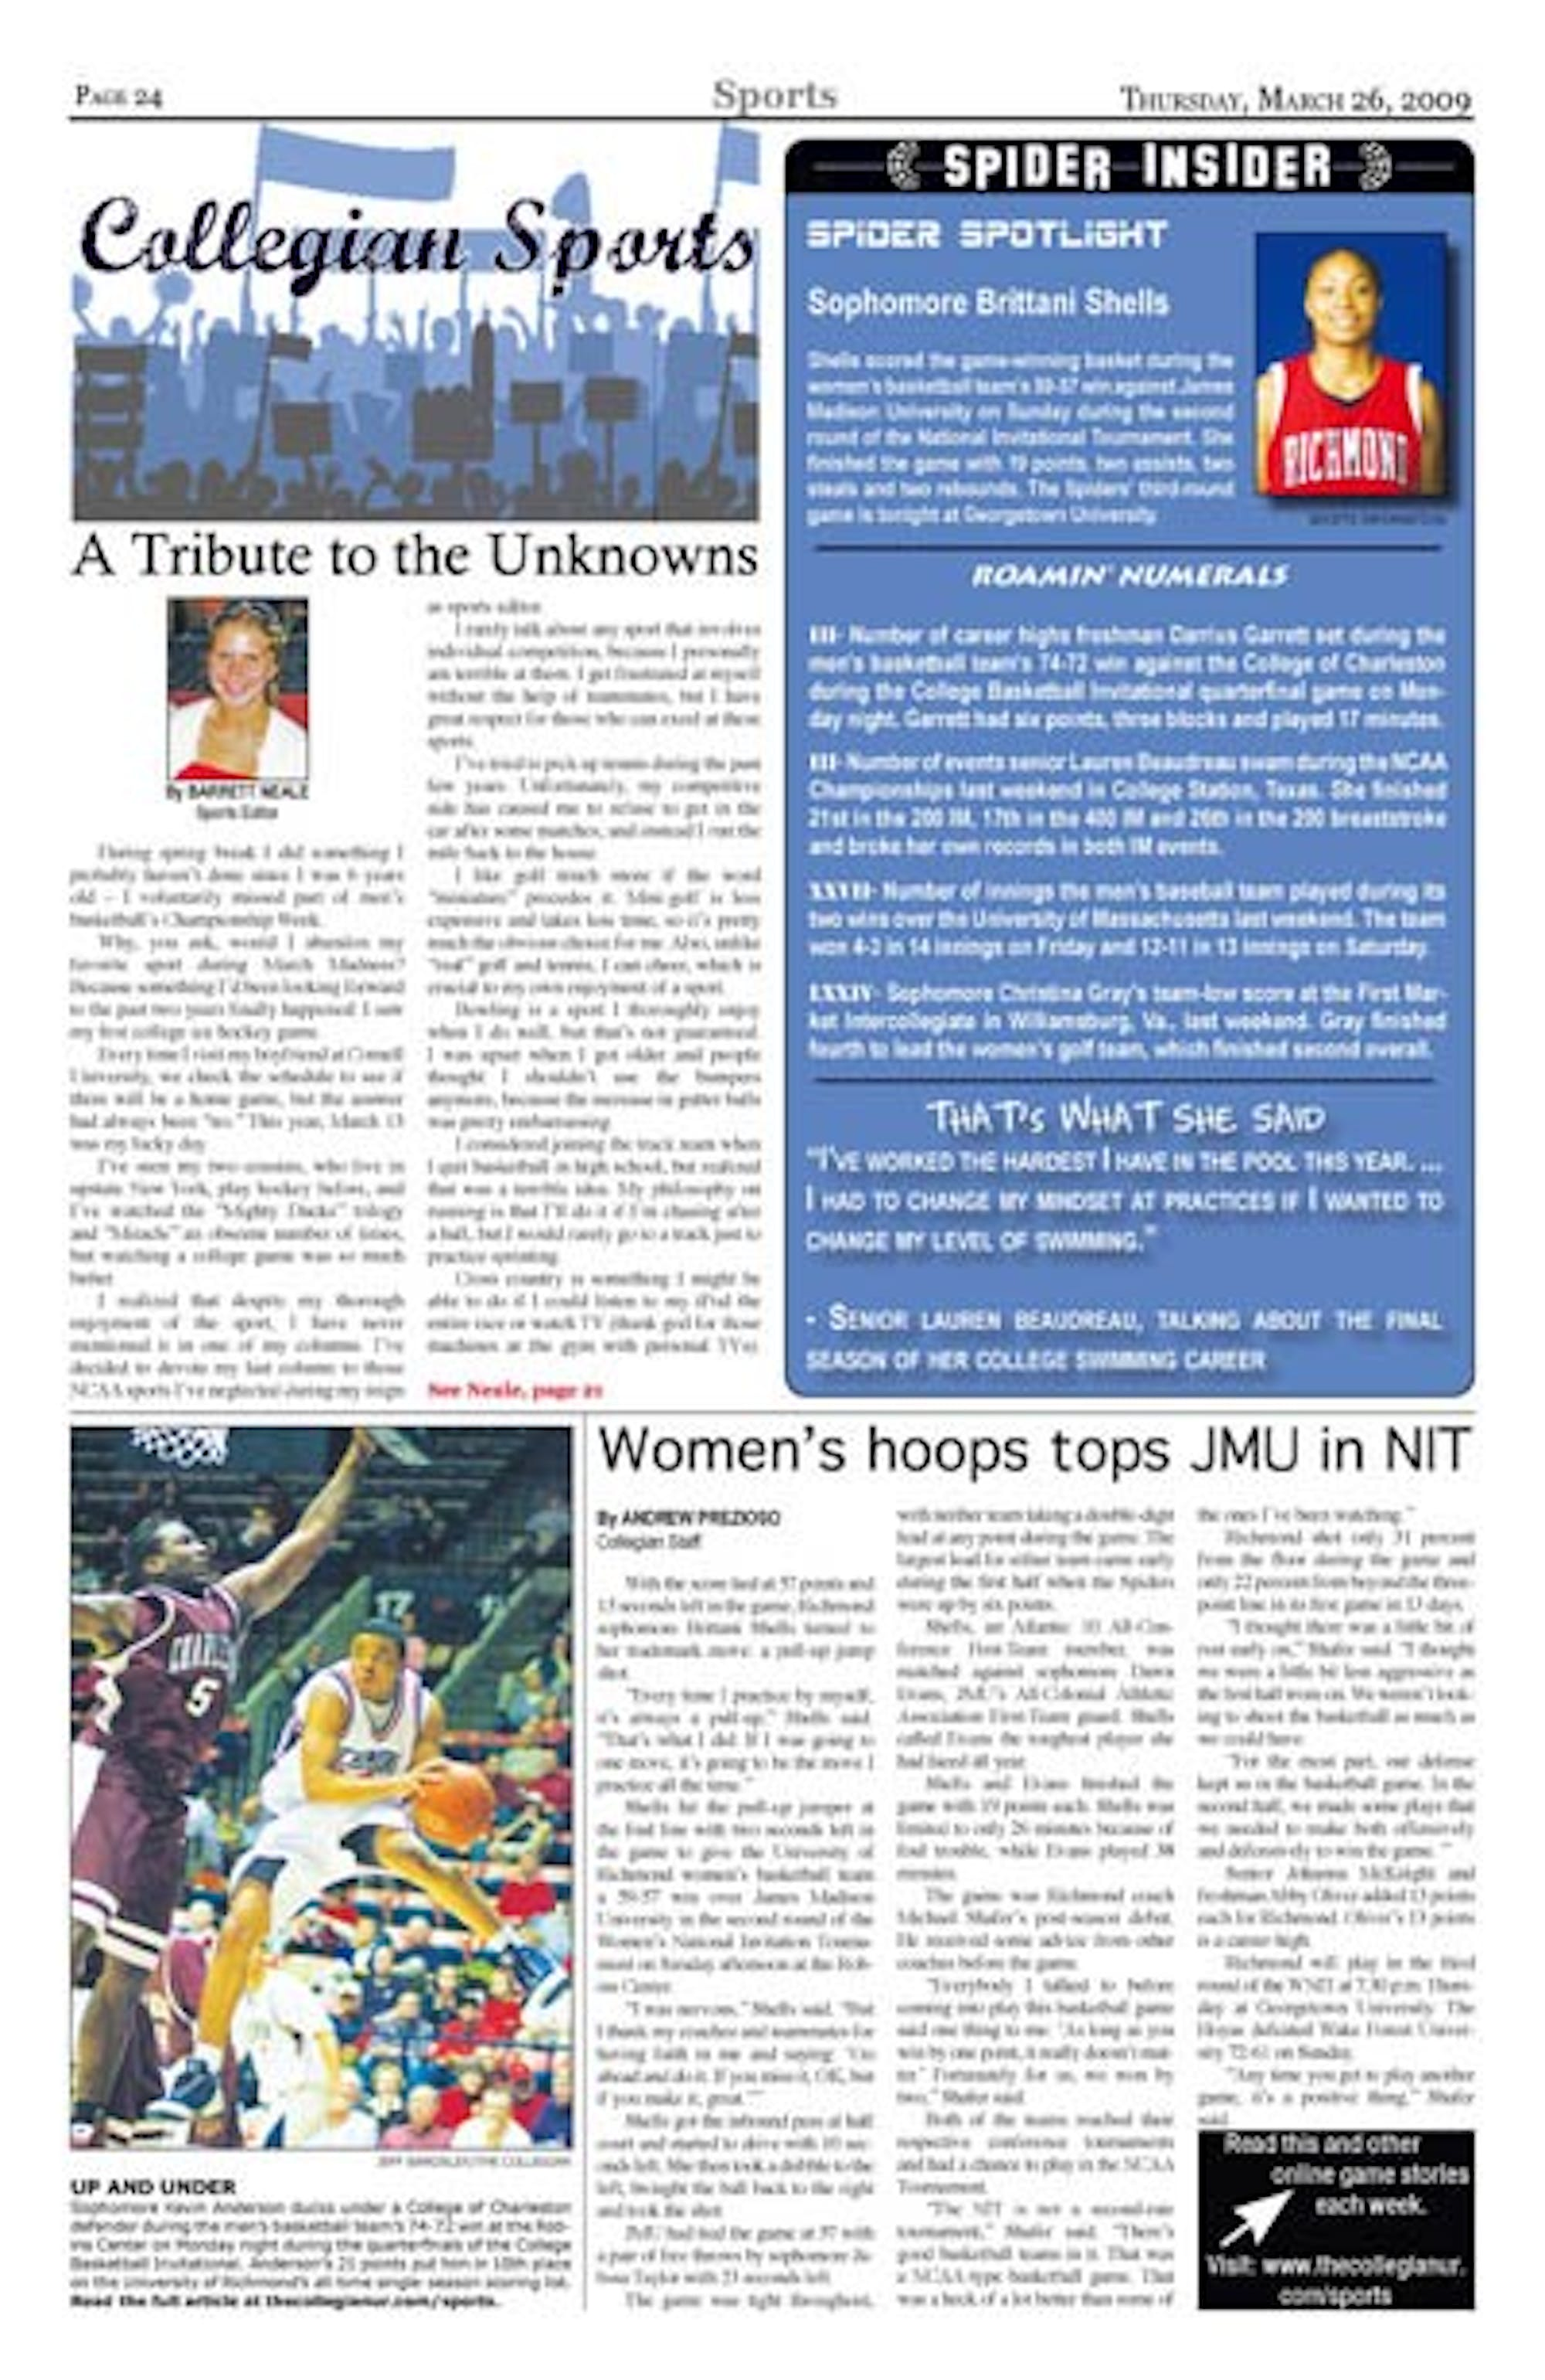 page-24-sports